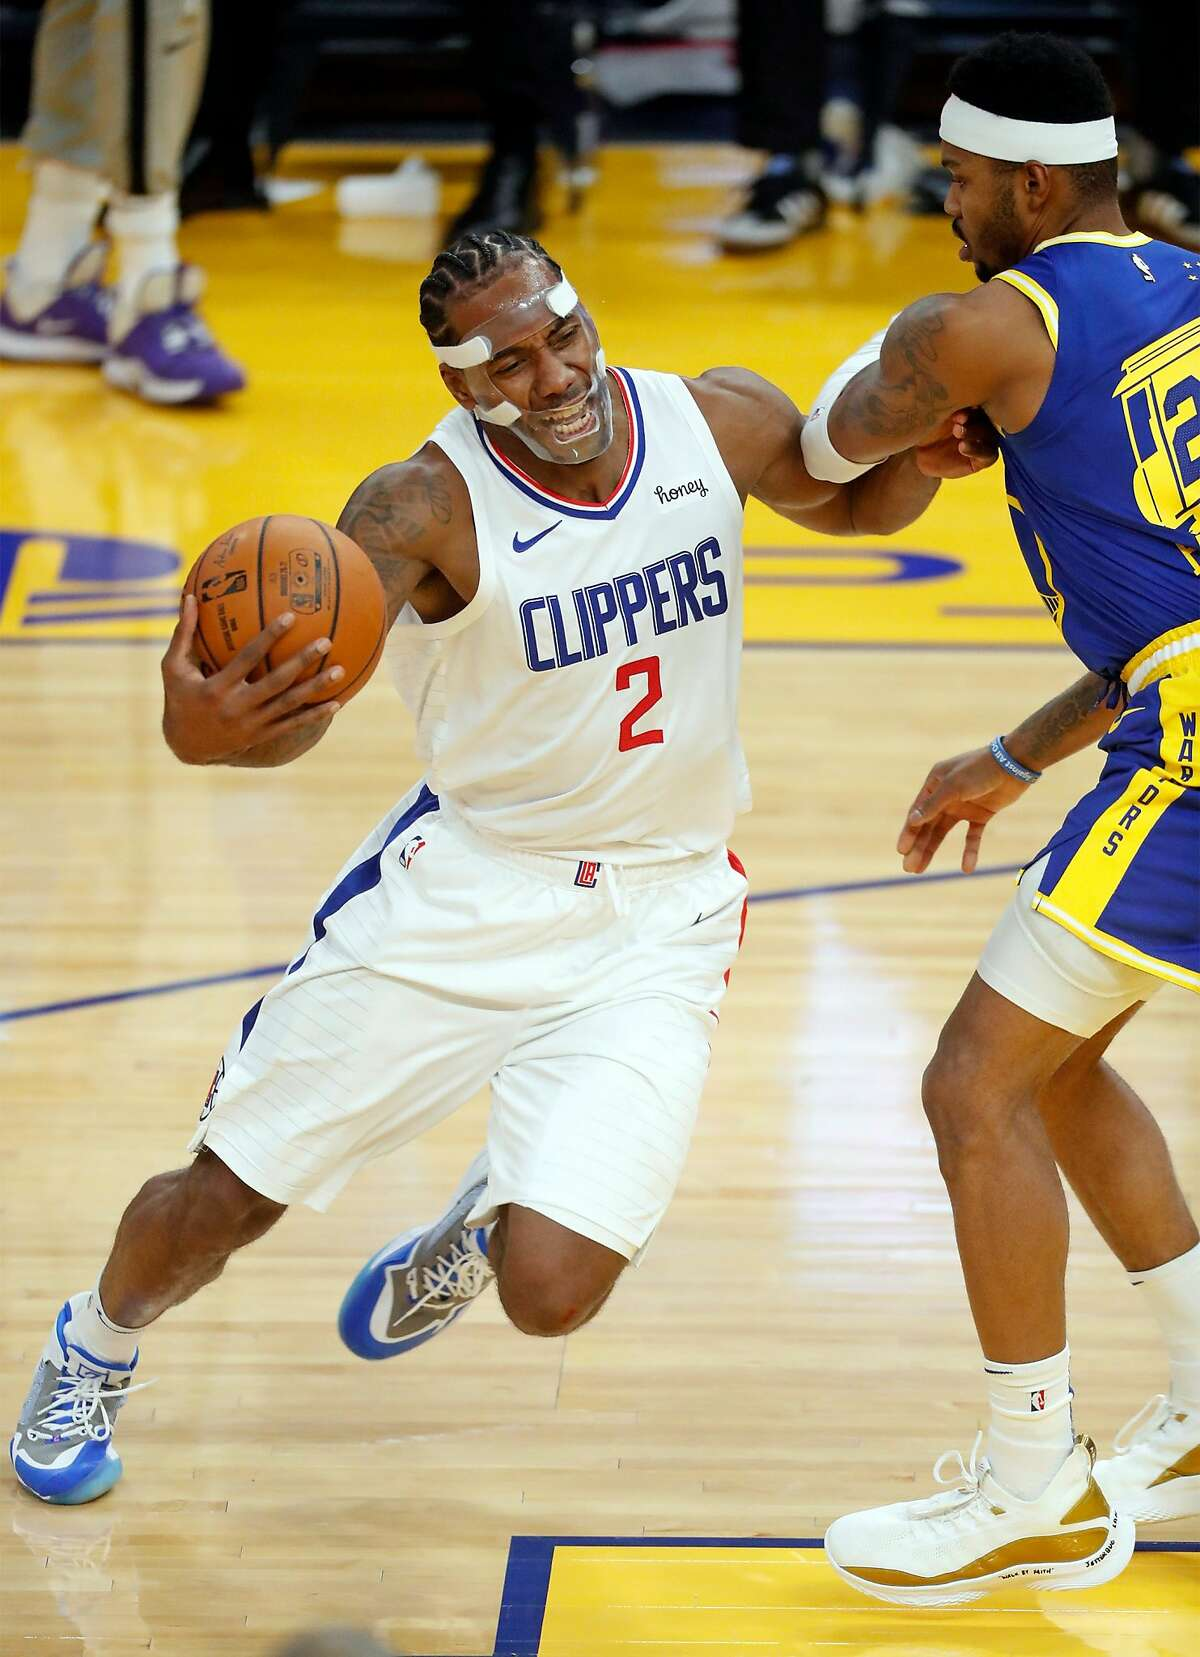 Clippers forward Kawhi Leonard drives against the Warriors' Kent Bazemore during the first quarter at Chase Center.